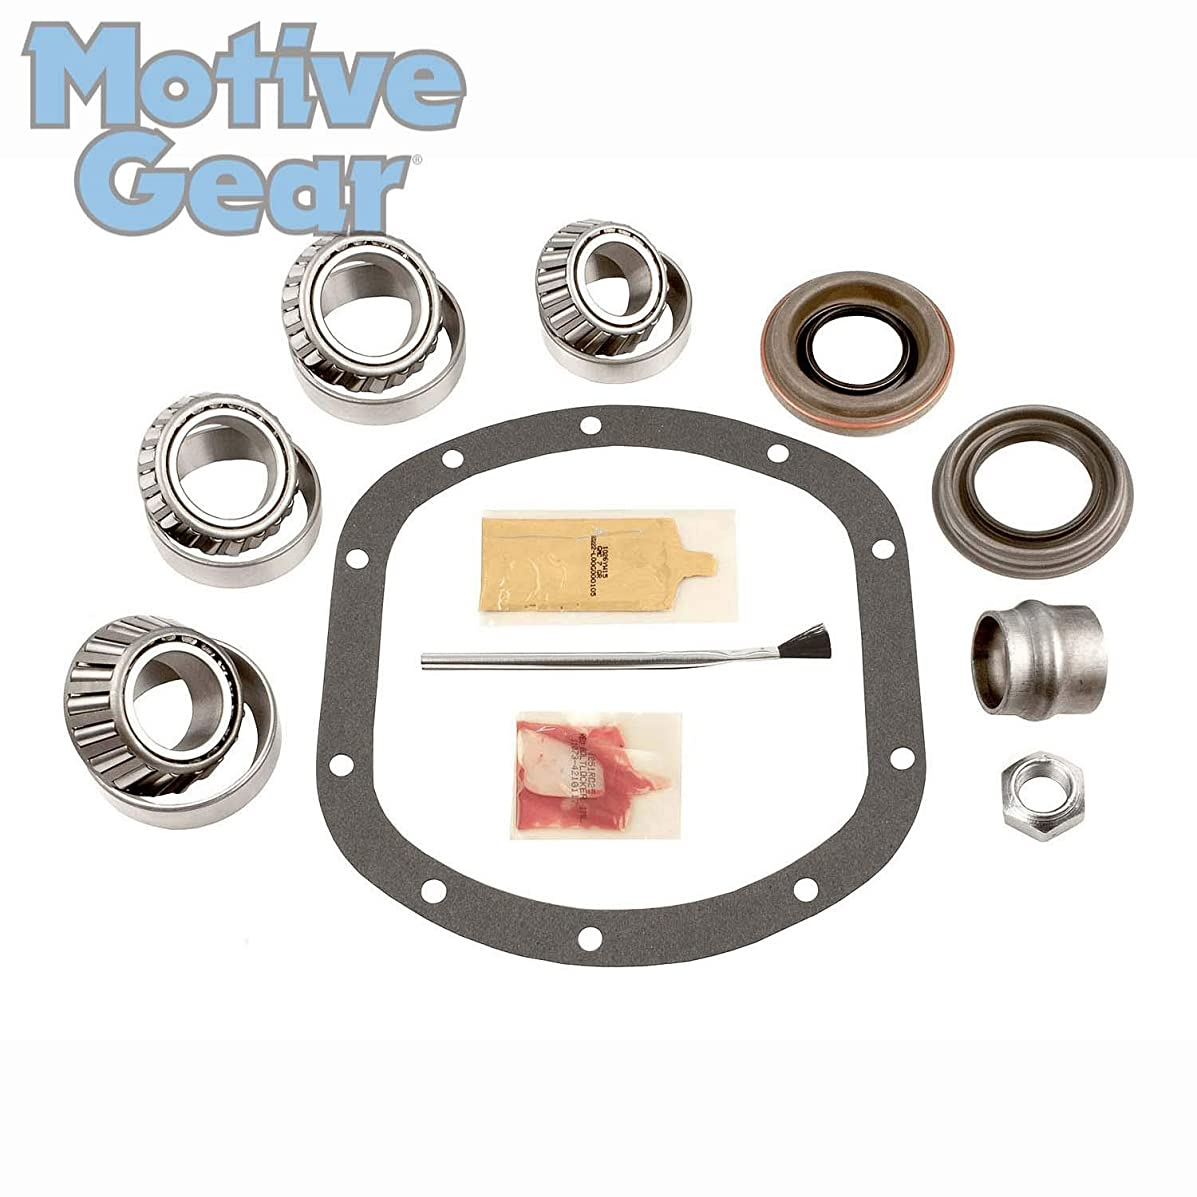 Motive Gear R30LRA Light Duty Koyo Bearing Kit (BK DANA 30 TJ '97-'06-ZJ-WJ-XJ)